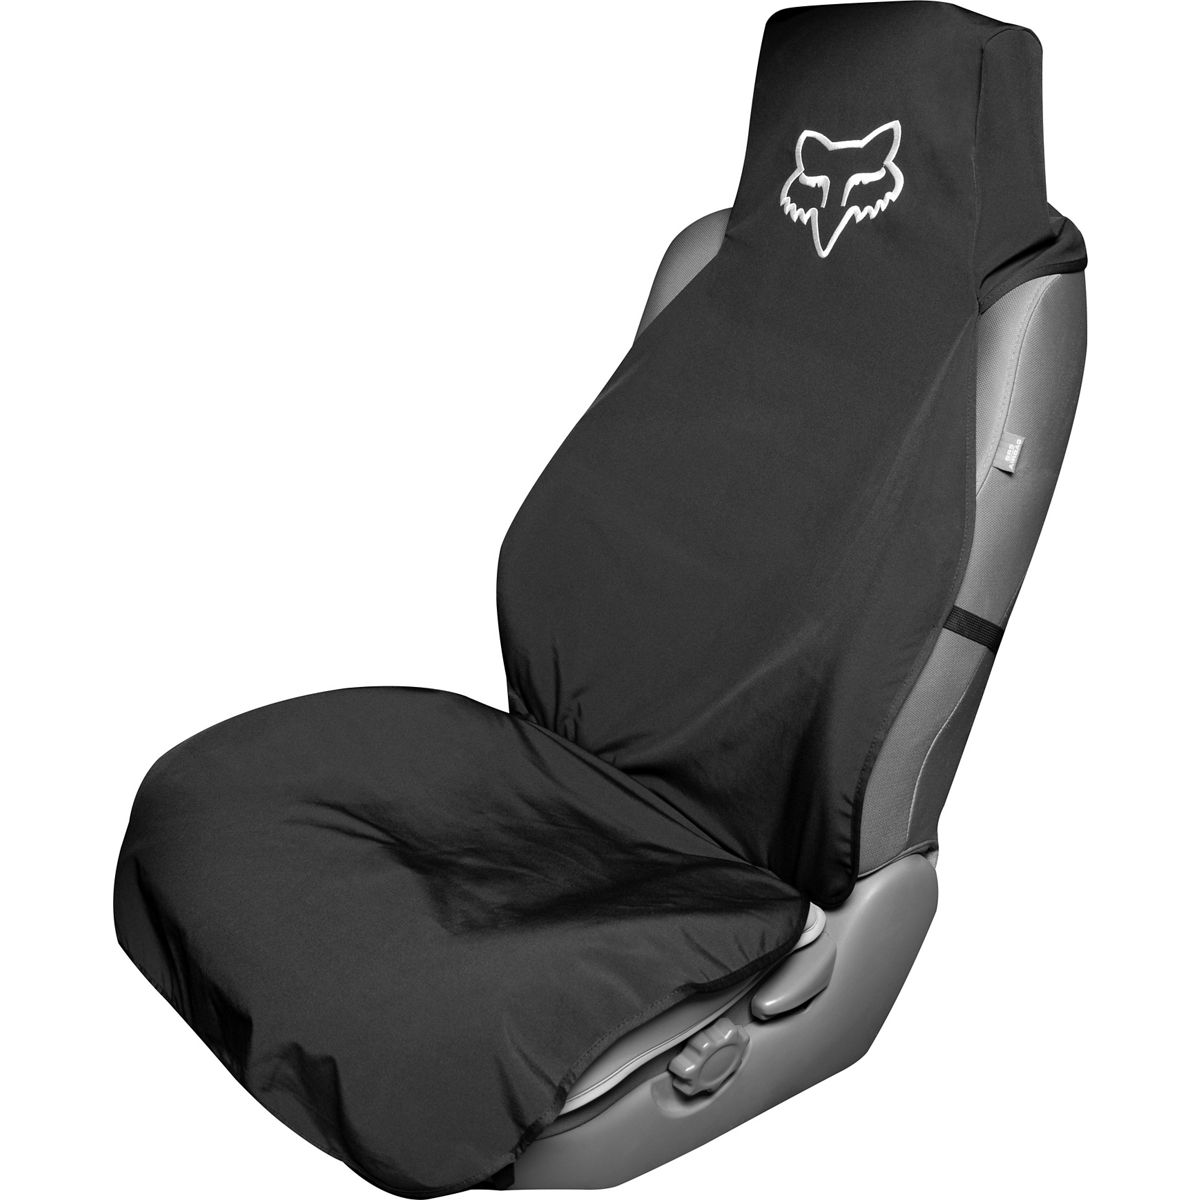 Fox Racing Car Seat Cover Black   24397-001-OS